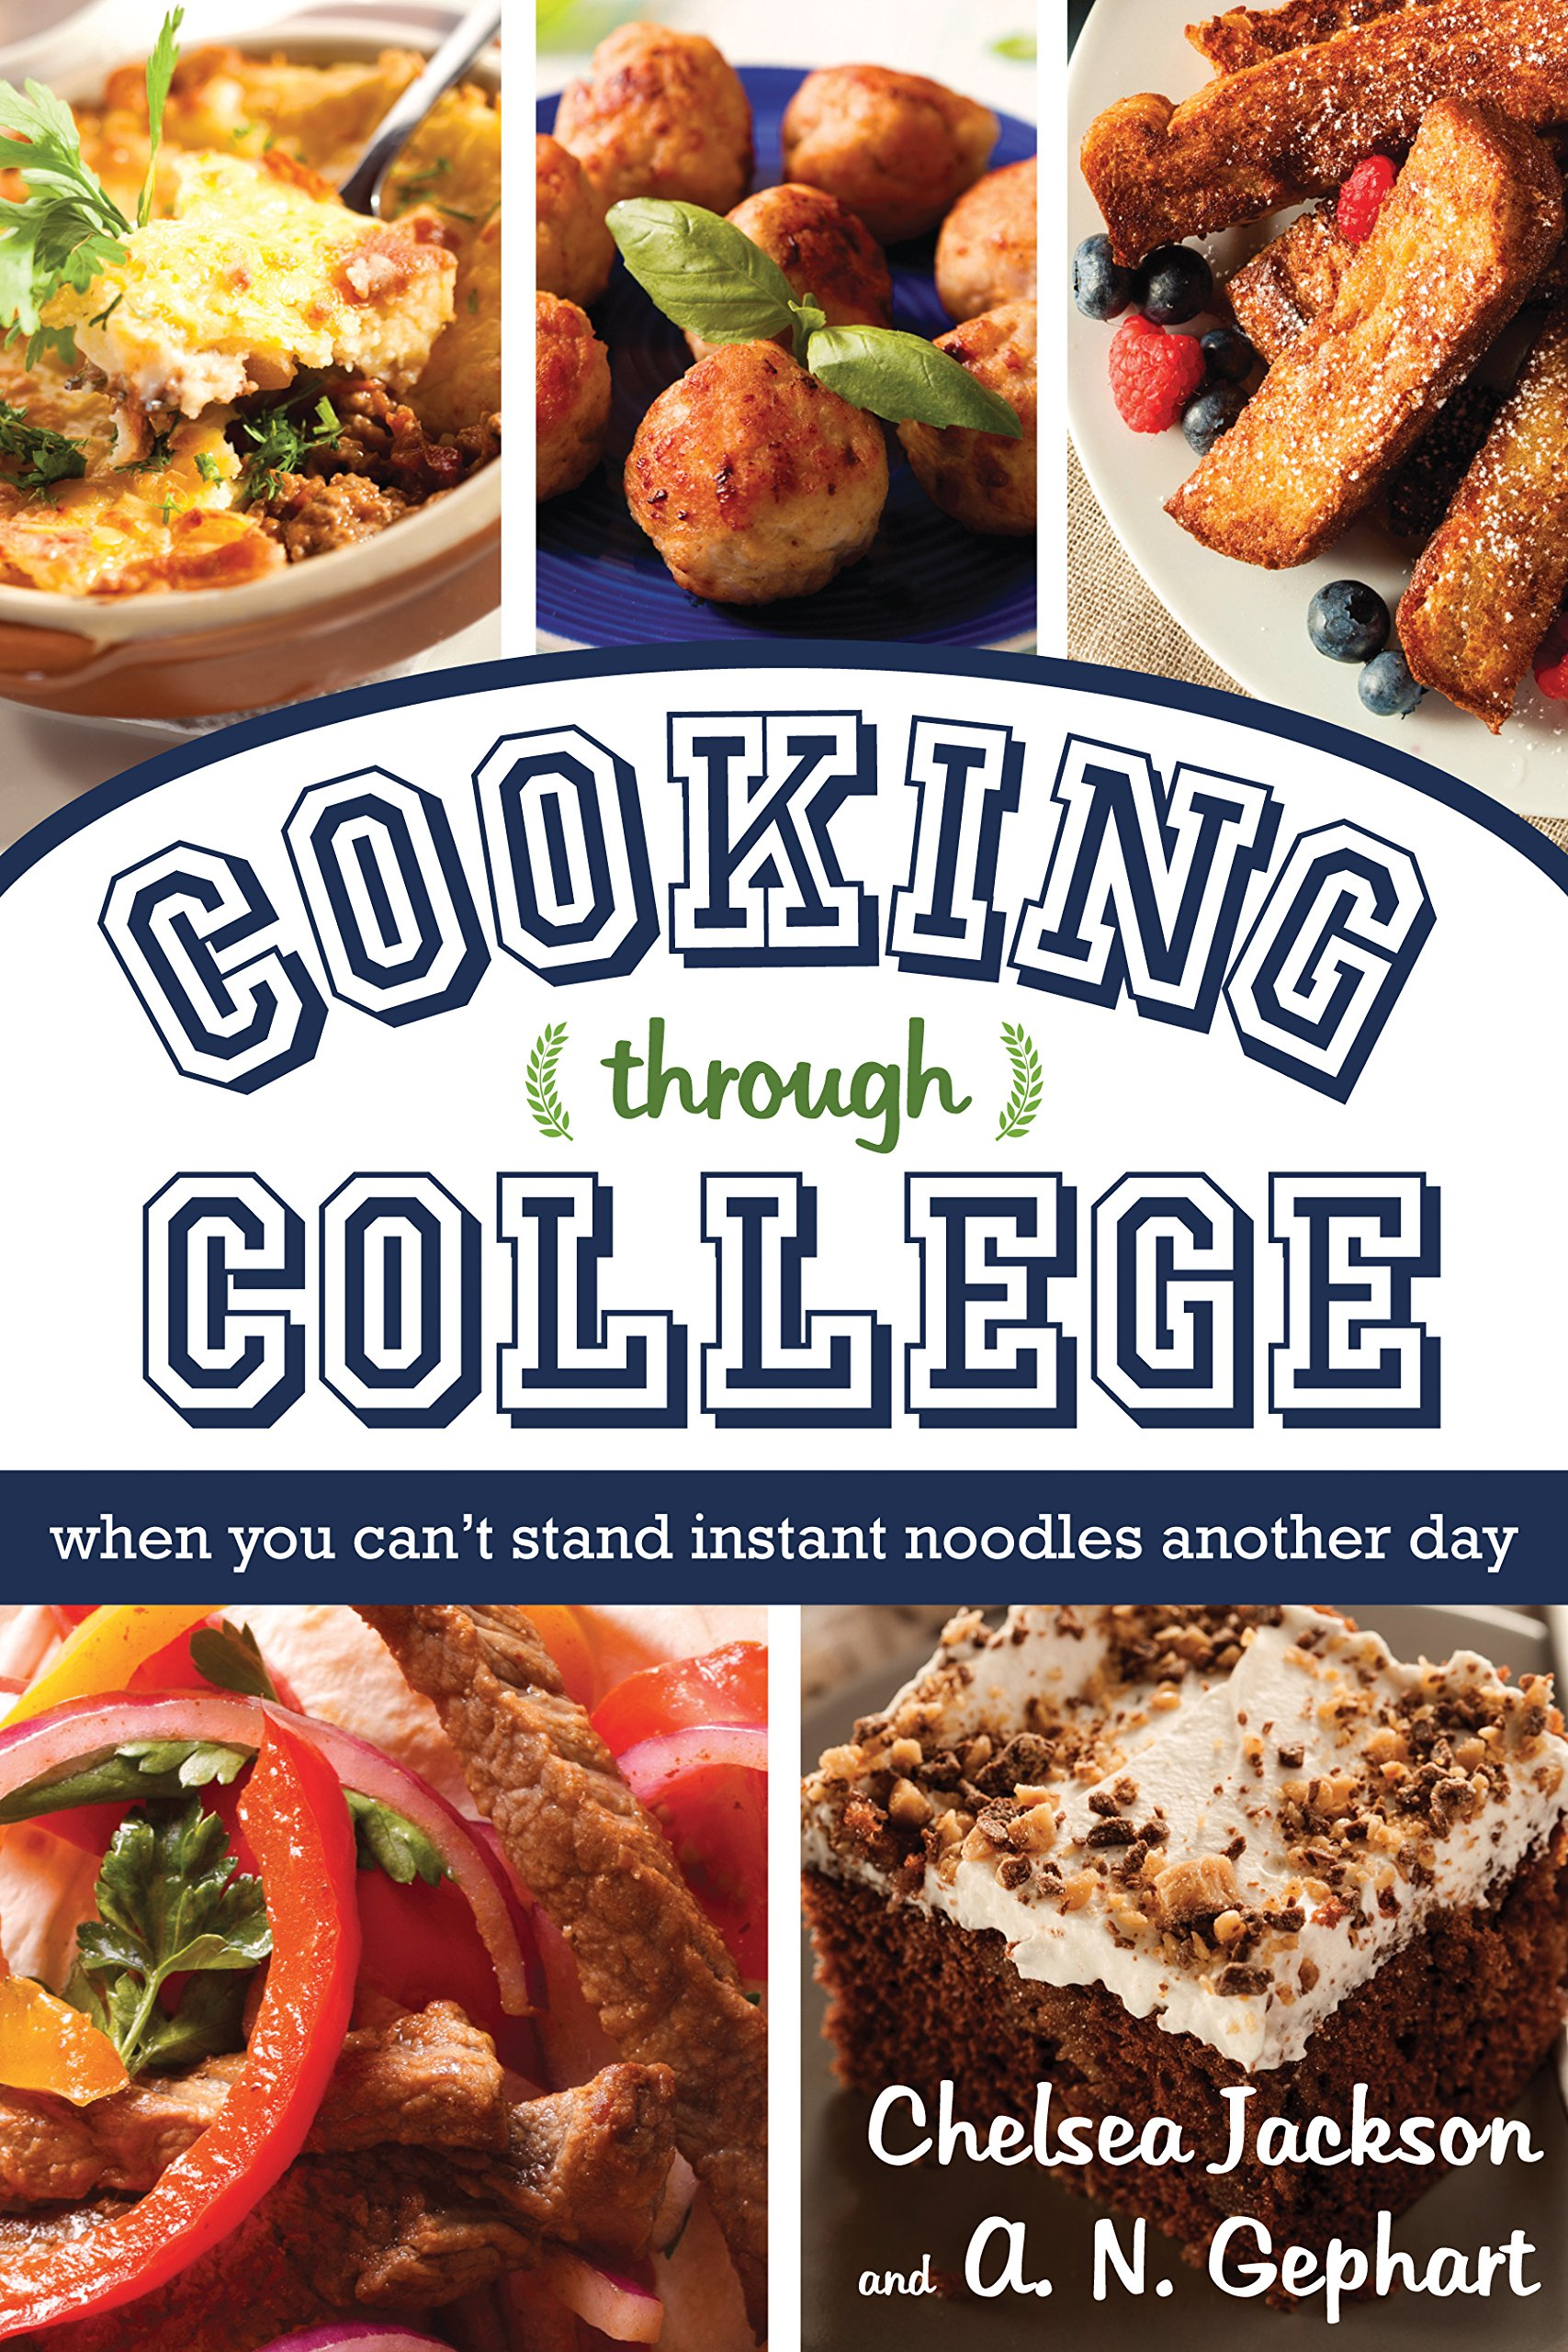 Cooking through college when you cant stand instant noodles cooking through college when you cant stand instant noodles another day chelsea jackson a n gephart 9781462118663 amazon books forumfinder Image collections